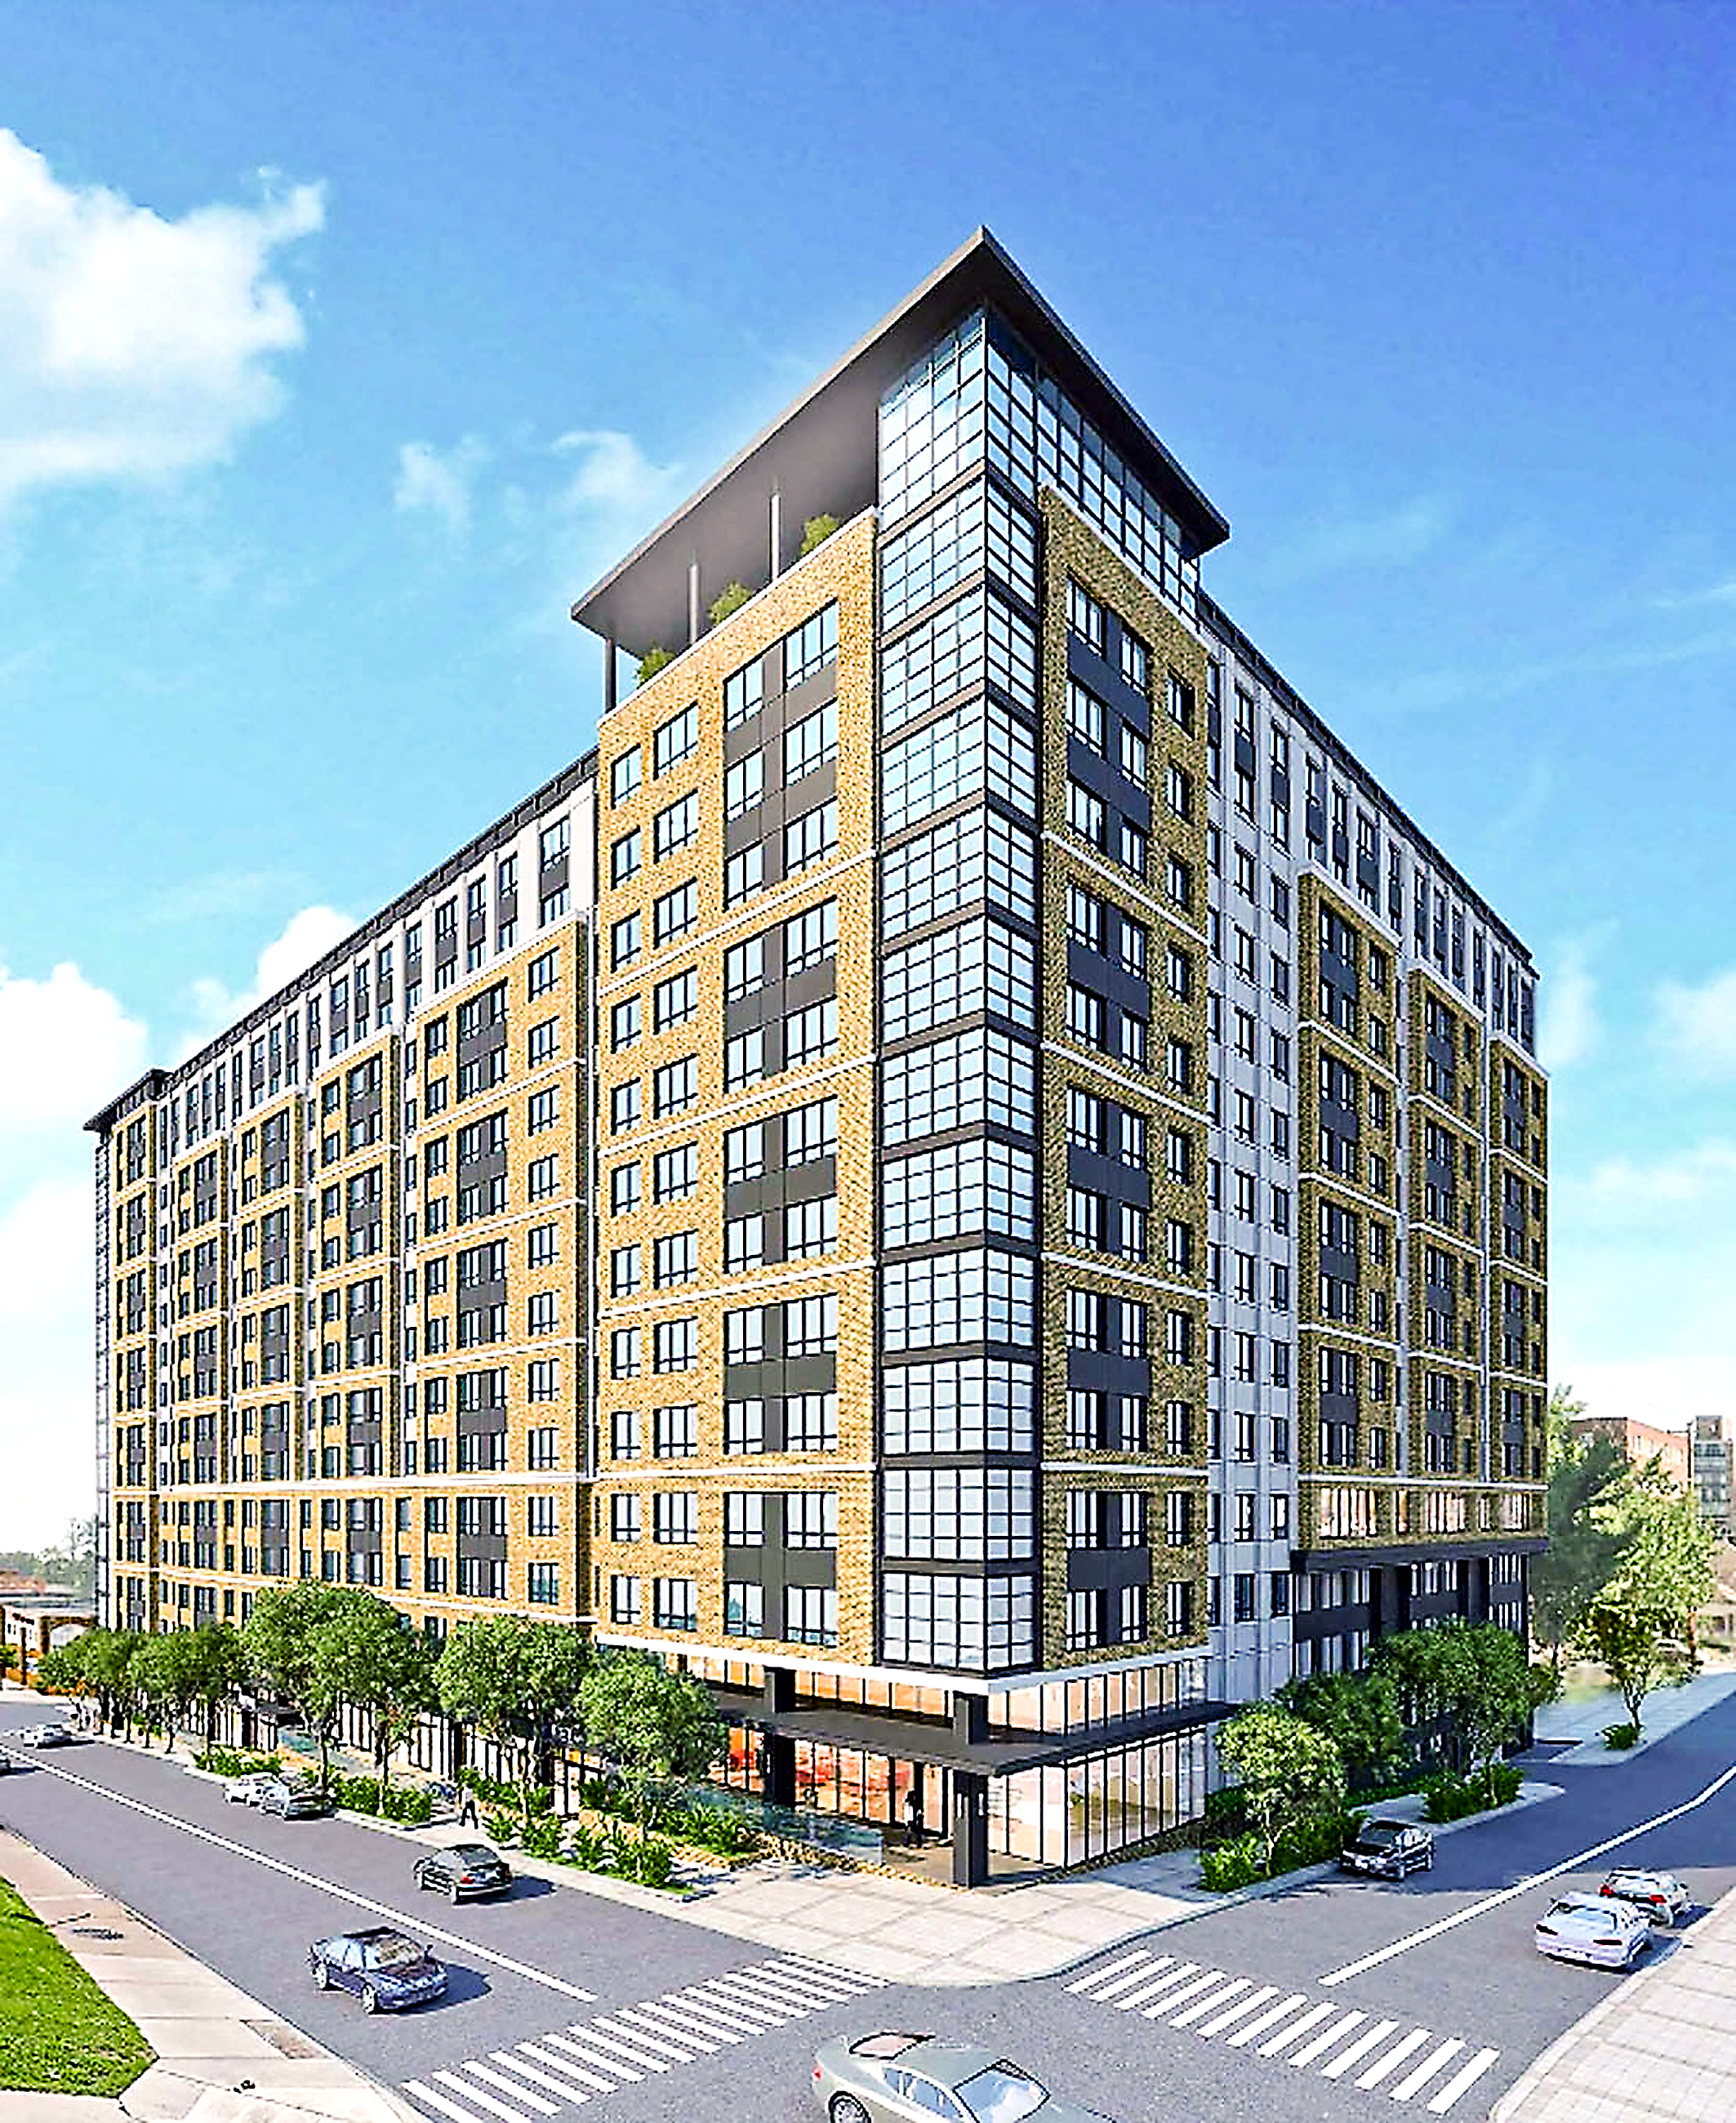 Near Apartments: New 17-story Apartment Building Going Up Near Pitt, CMU